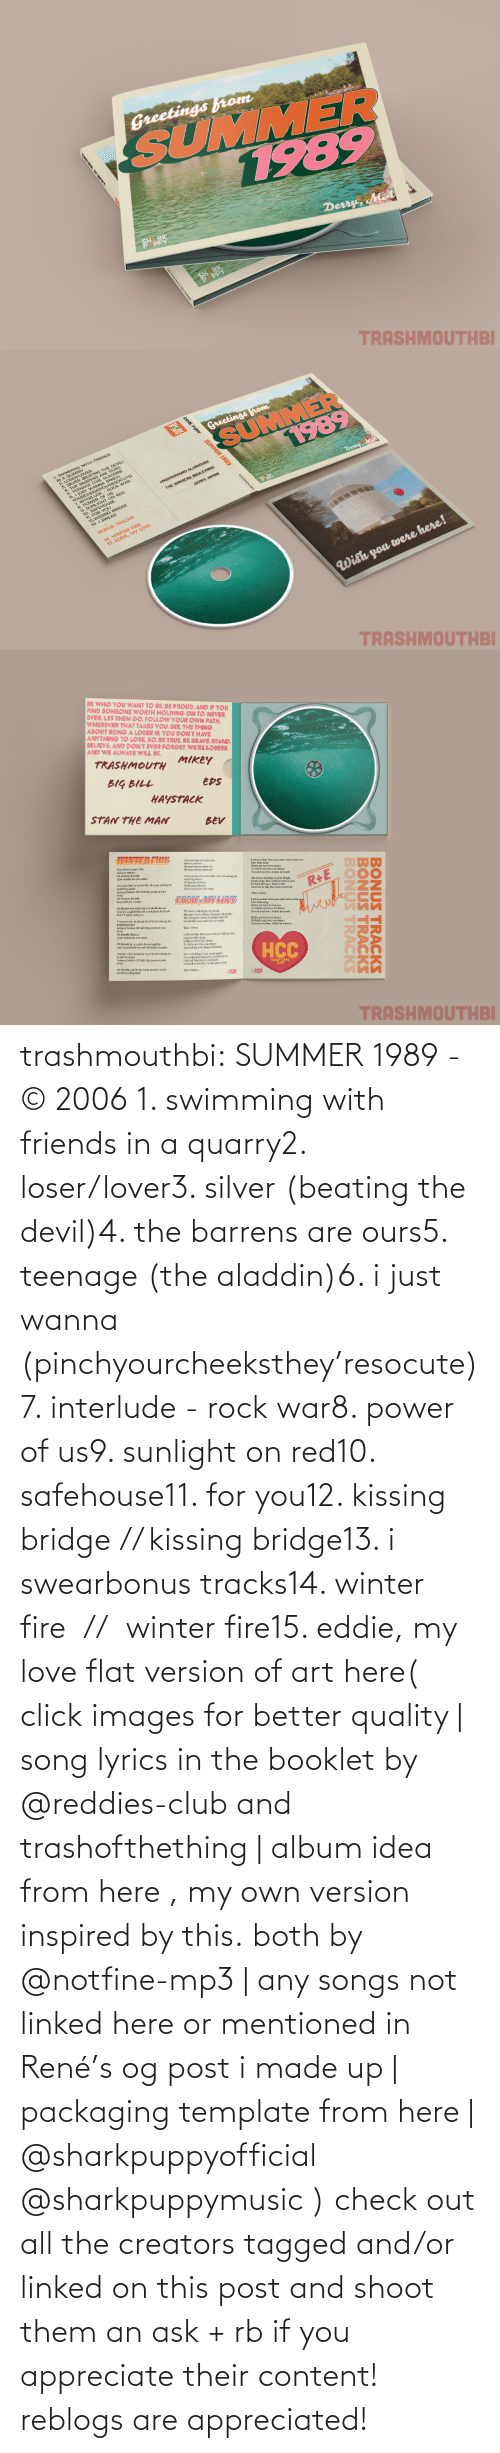 Silver: trashmouthbi: SUMMER 1989 - © 2006 1. swimming with friends in a quarry2. loser/lover3. silver (beating the devil)4. the barrens are ours5. teenage (the aladdin)6. i just wanna (pinchyourcheeksthey'resocute)7. interlude - rock war8. power of us9. sunlight on red10. safehouse11. for you12. kissing bridge // kissing bridge13. i swearbonus tracks14. winter fire  //  winter fire15. eddie, my love flat version of art here( click images for better quality | song lyrics in the booklet by @reddies-club​ and trashofthething | album idea from here , my own version inspired by this. both by @notfine-mp3​ | any songs not linked here or mentioned in René's og post i made up | packaging template from here | @sharkpuppyofficial​ @sharkpuppymusic​ ) check out all the creators tagged and/or linked on this post and shoot them an ask + rb if you appreciate their content! reblogs are appreciated!